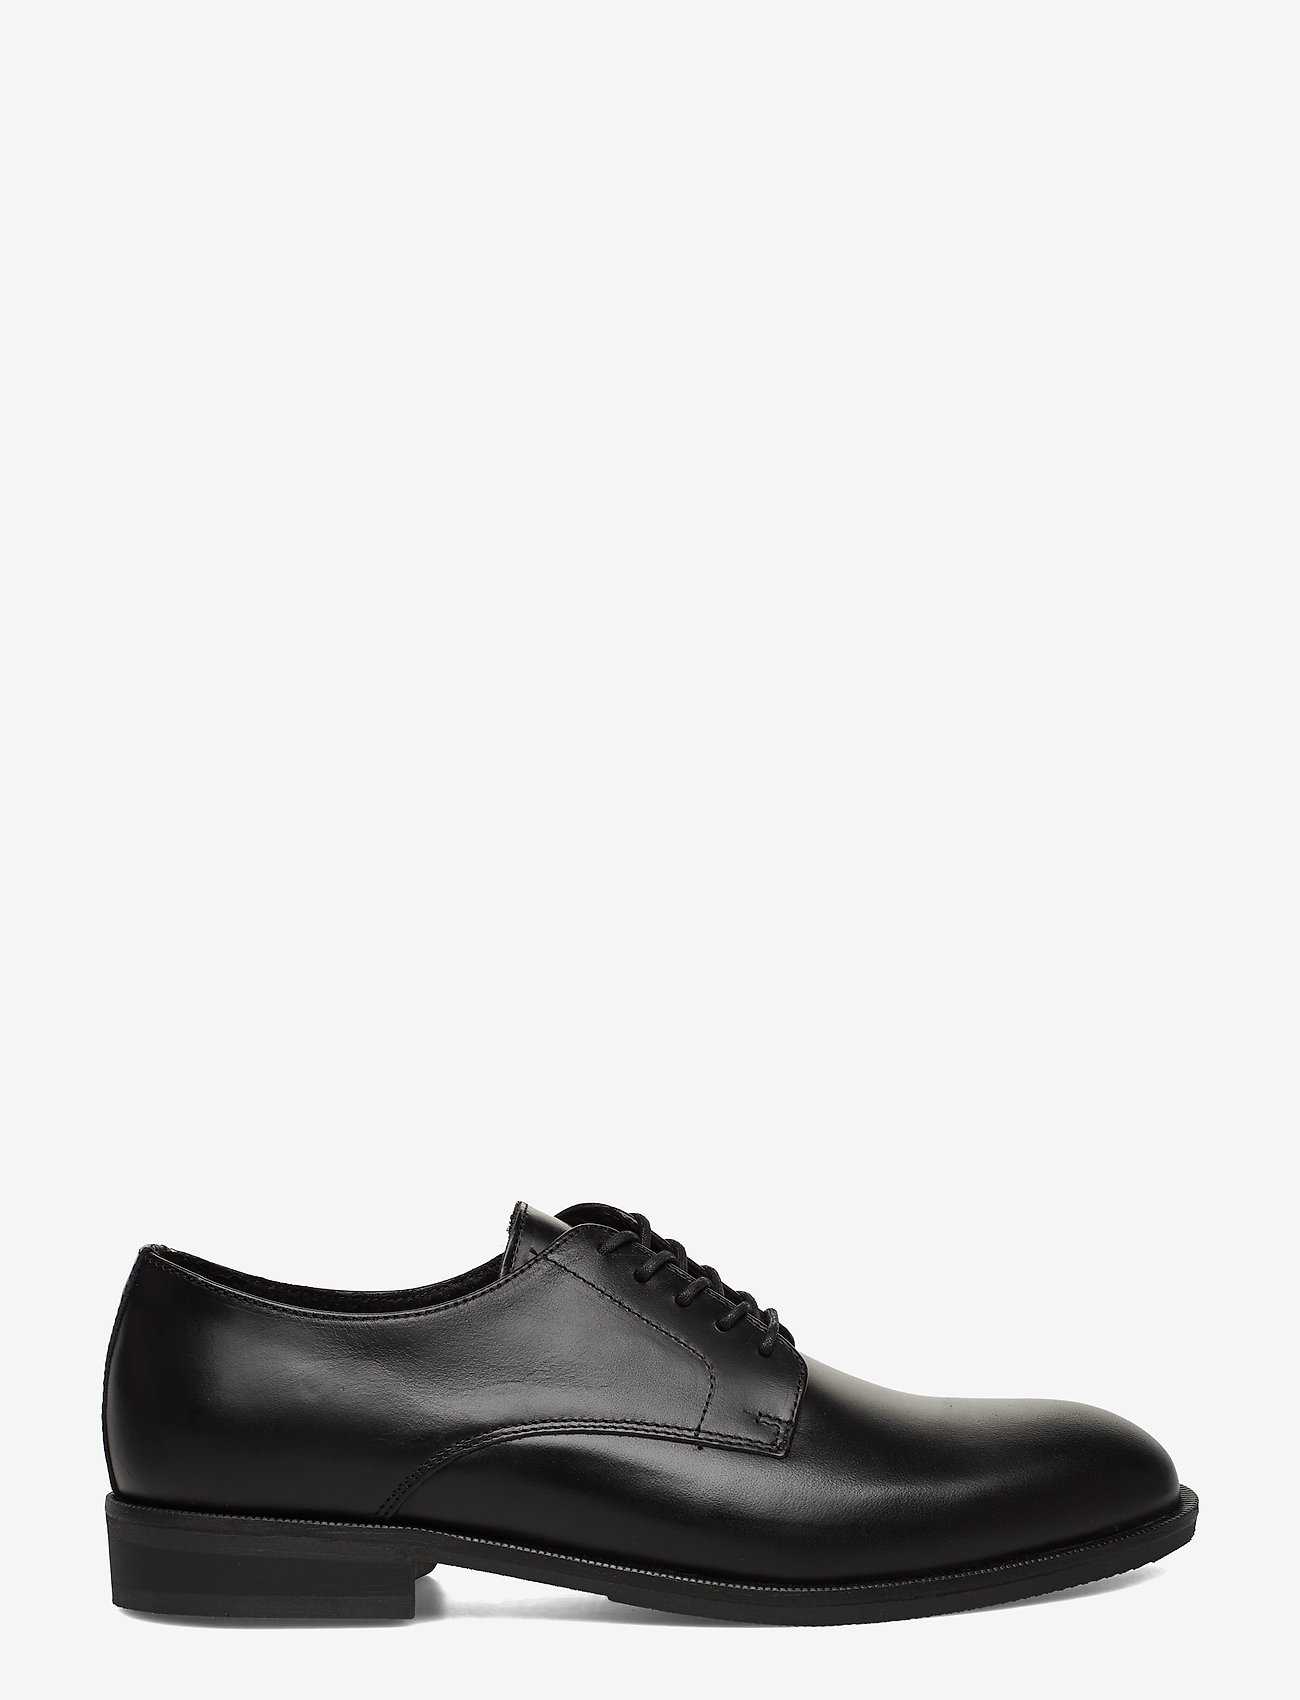 Selected Homme - SLHLOUIS LEATHER DERBY SHOE B NOOS - veterschoenen - black - 1